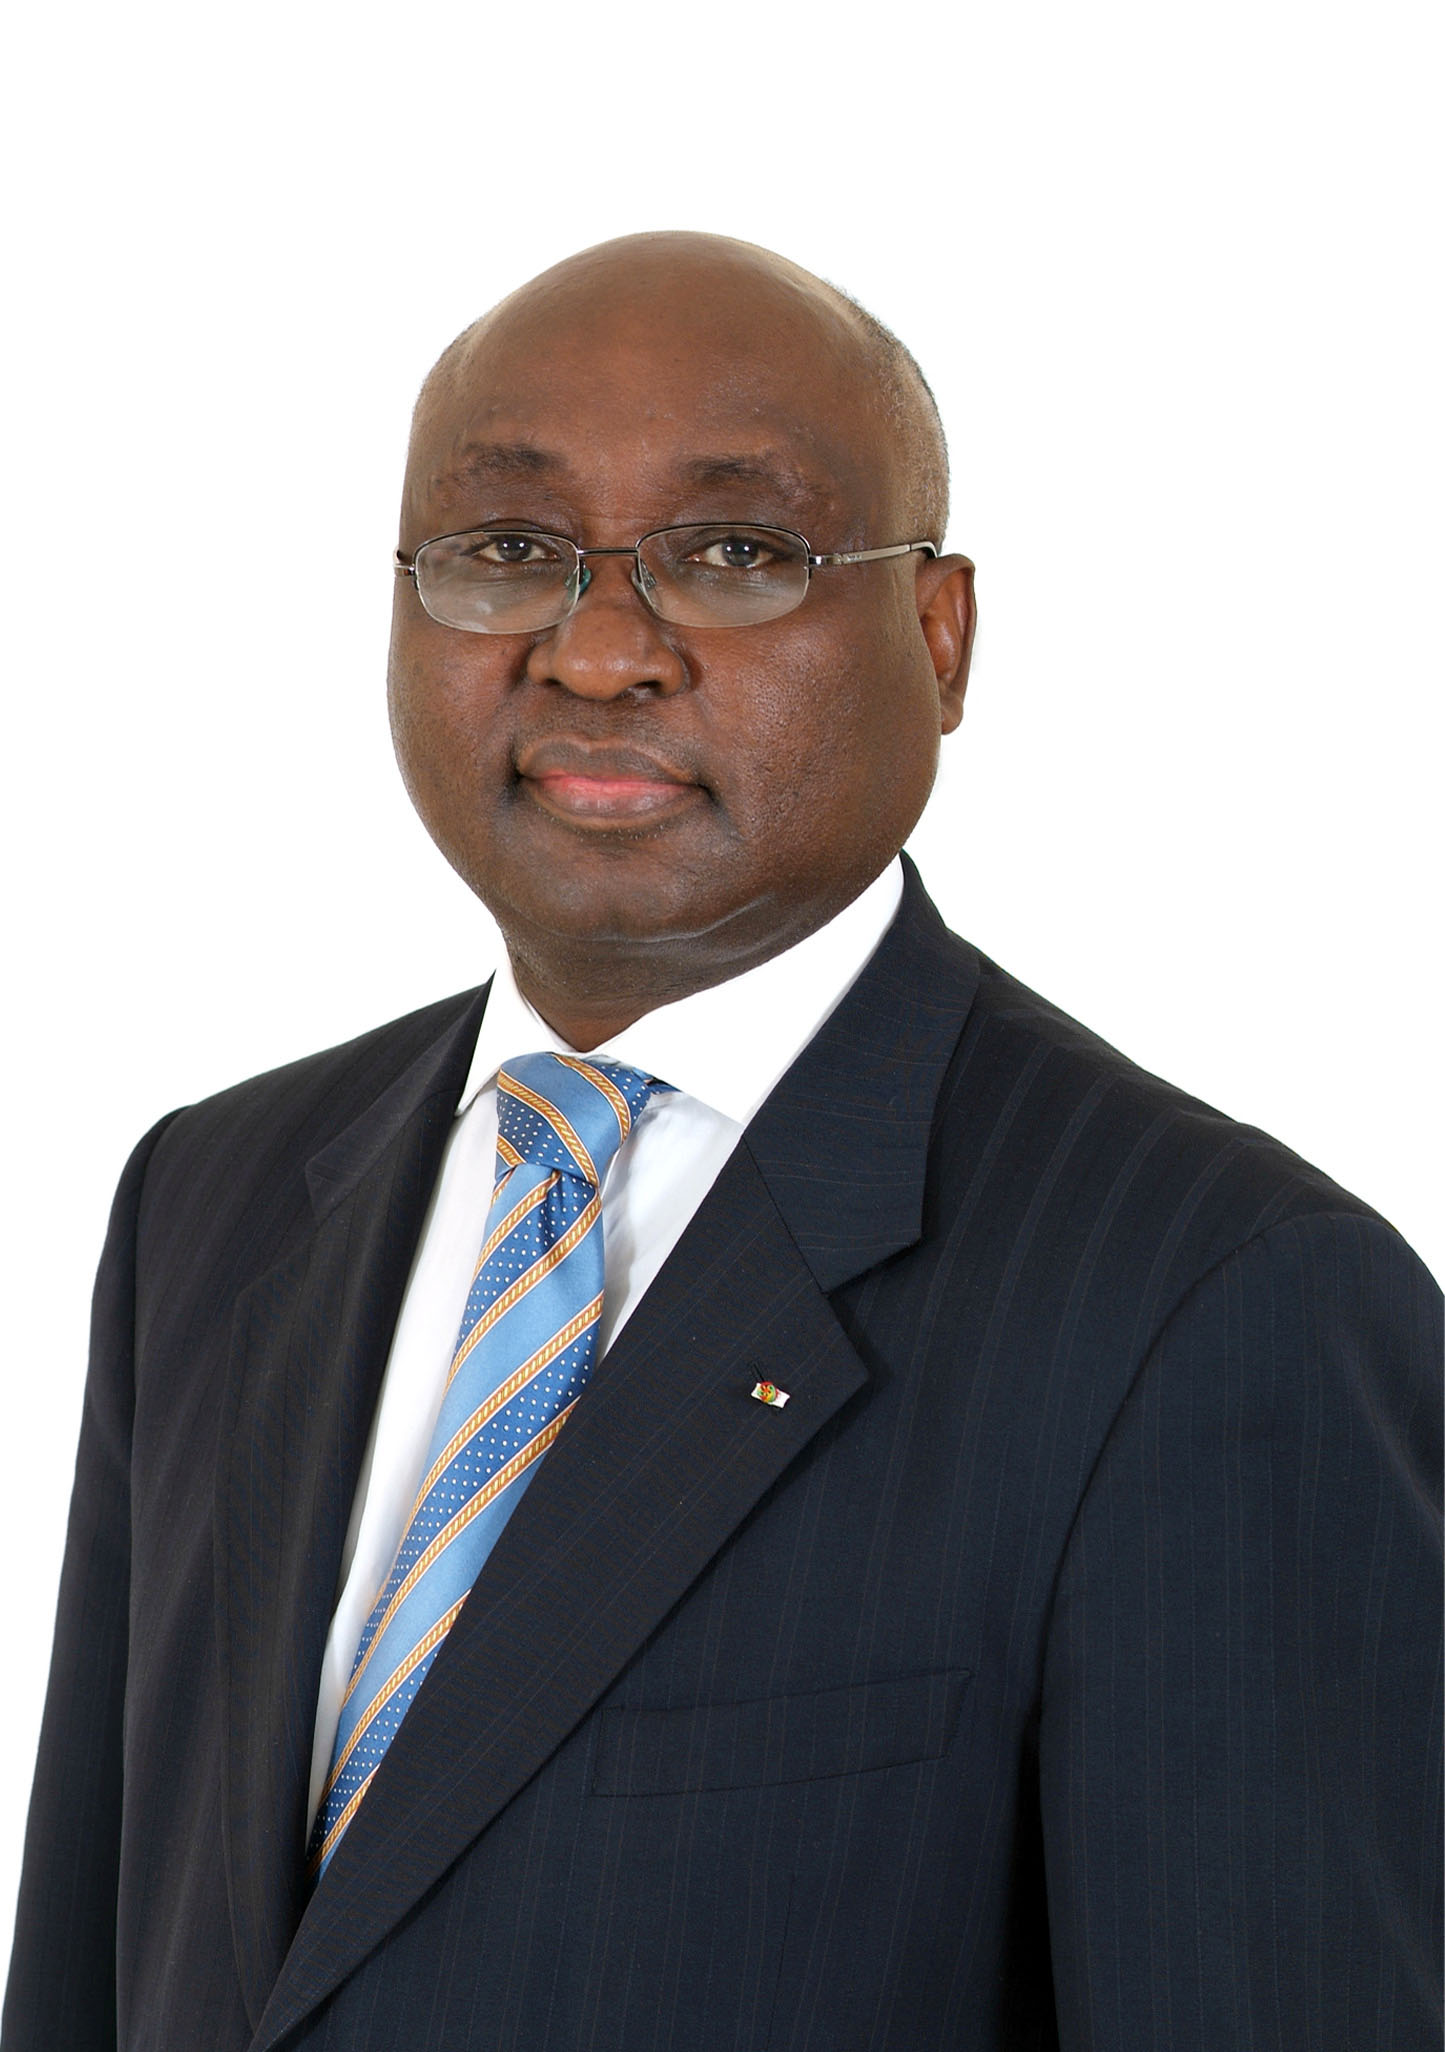 AfDB President named 2013 African of the Year